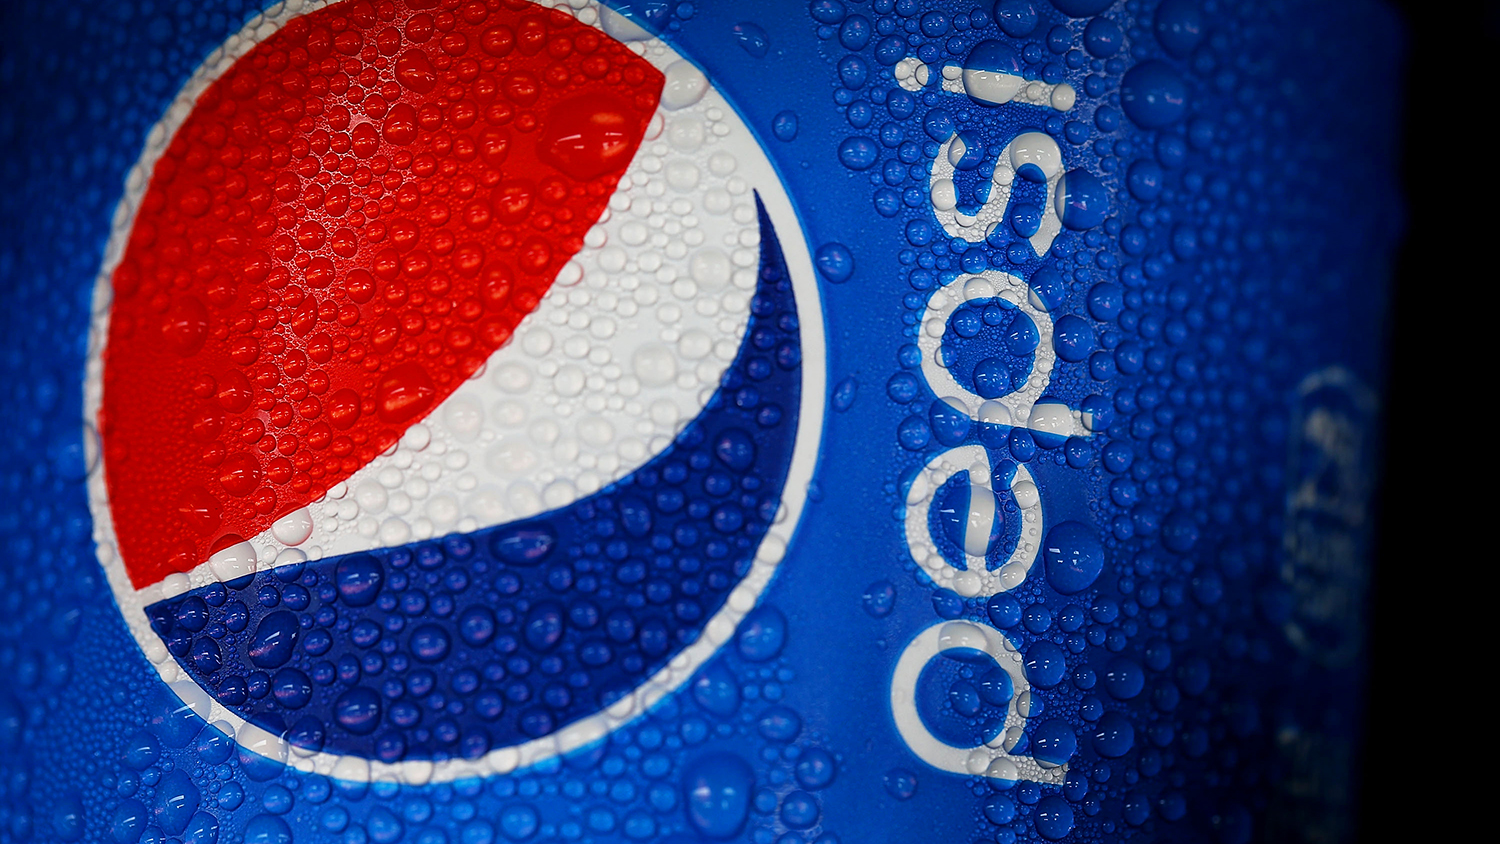 Pepsi Just Might Be Coming Out With a New Cinnamon Flavor